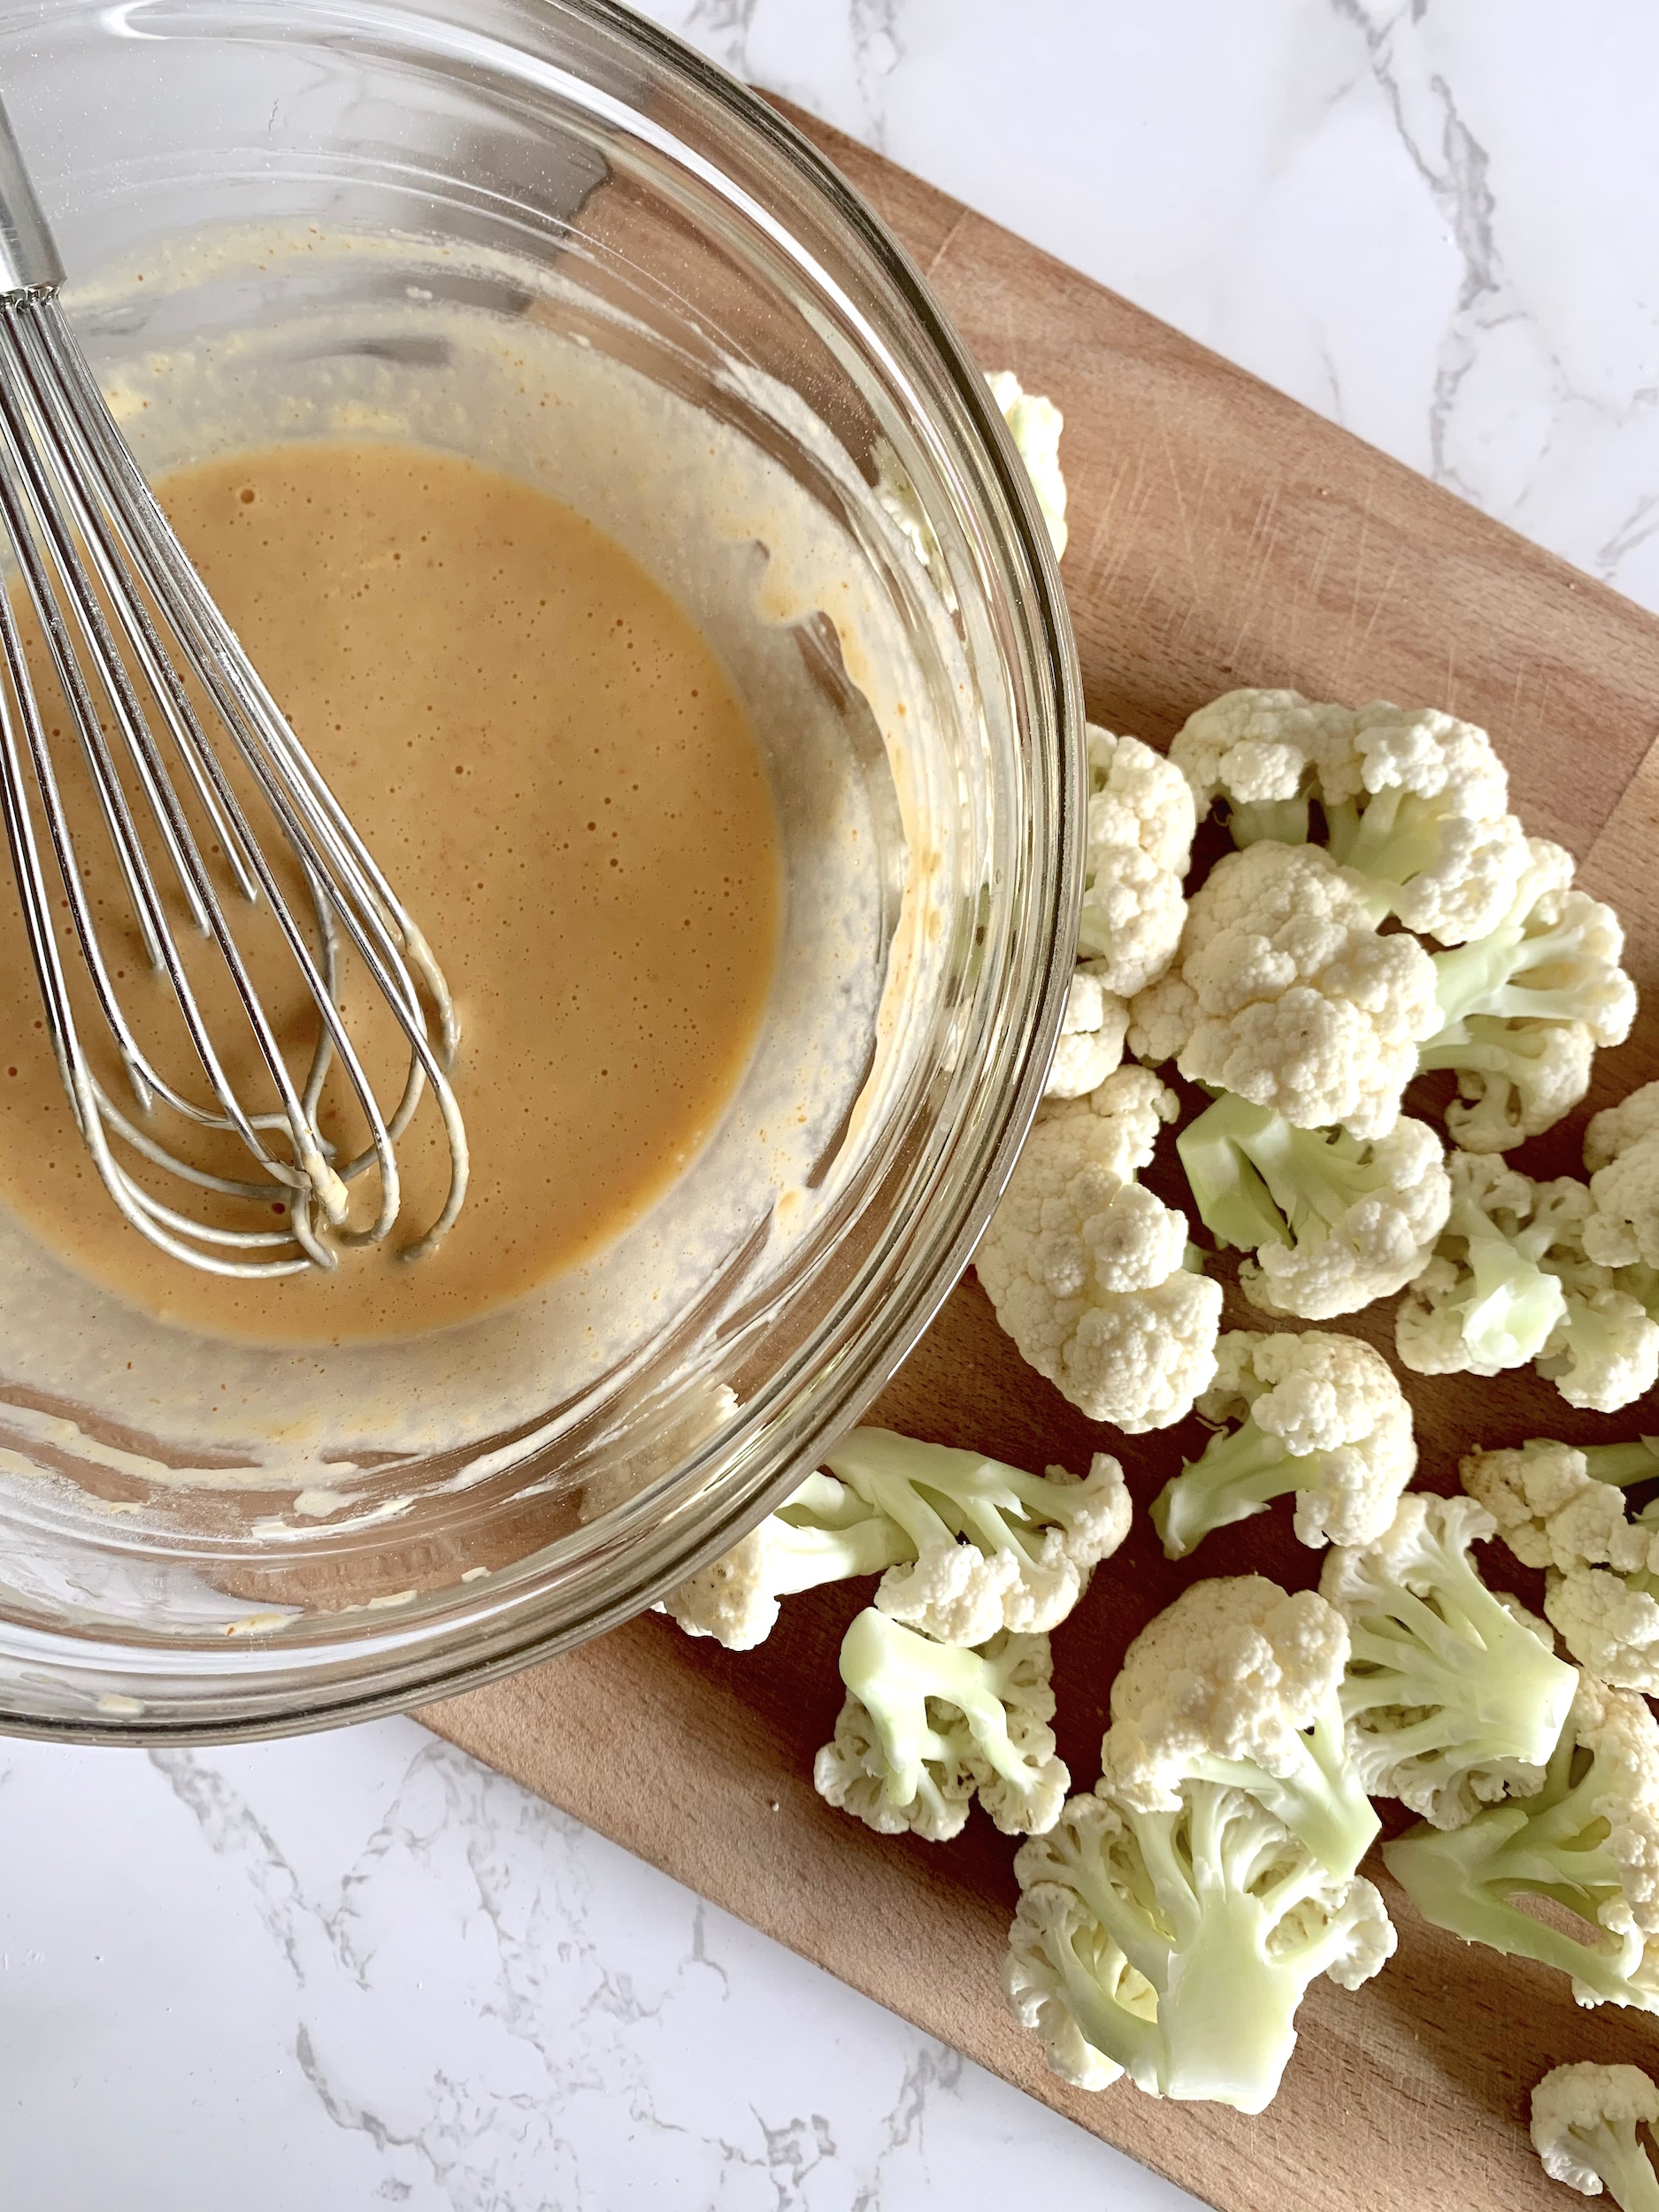 raw cauliflower florets on a wood cutting board with glass bowl of marinade with a whisk